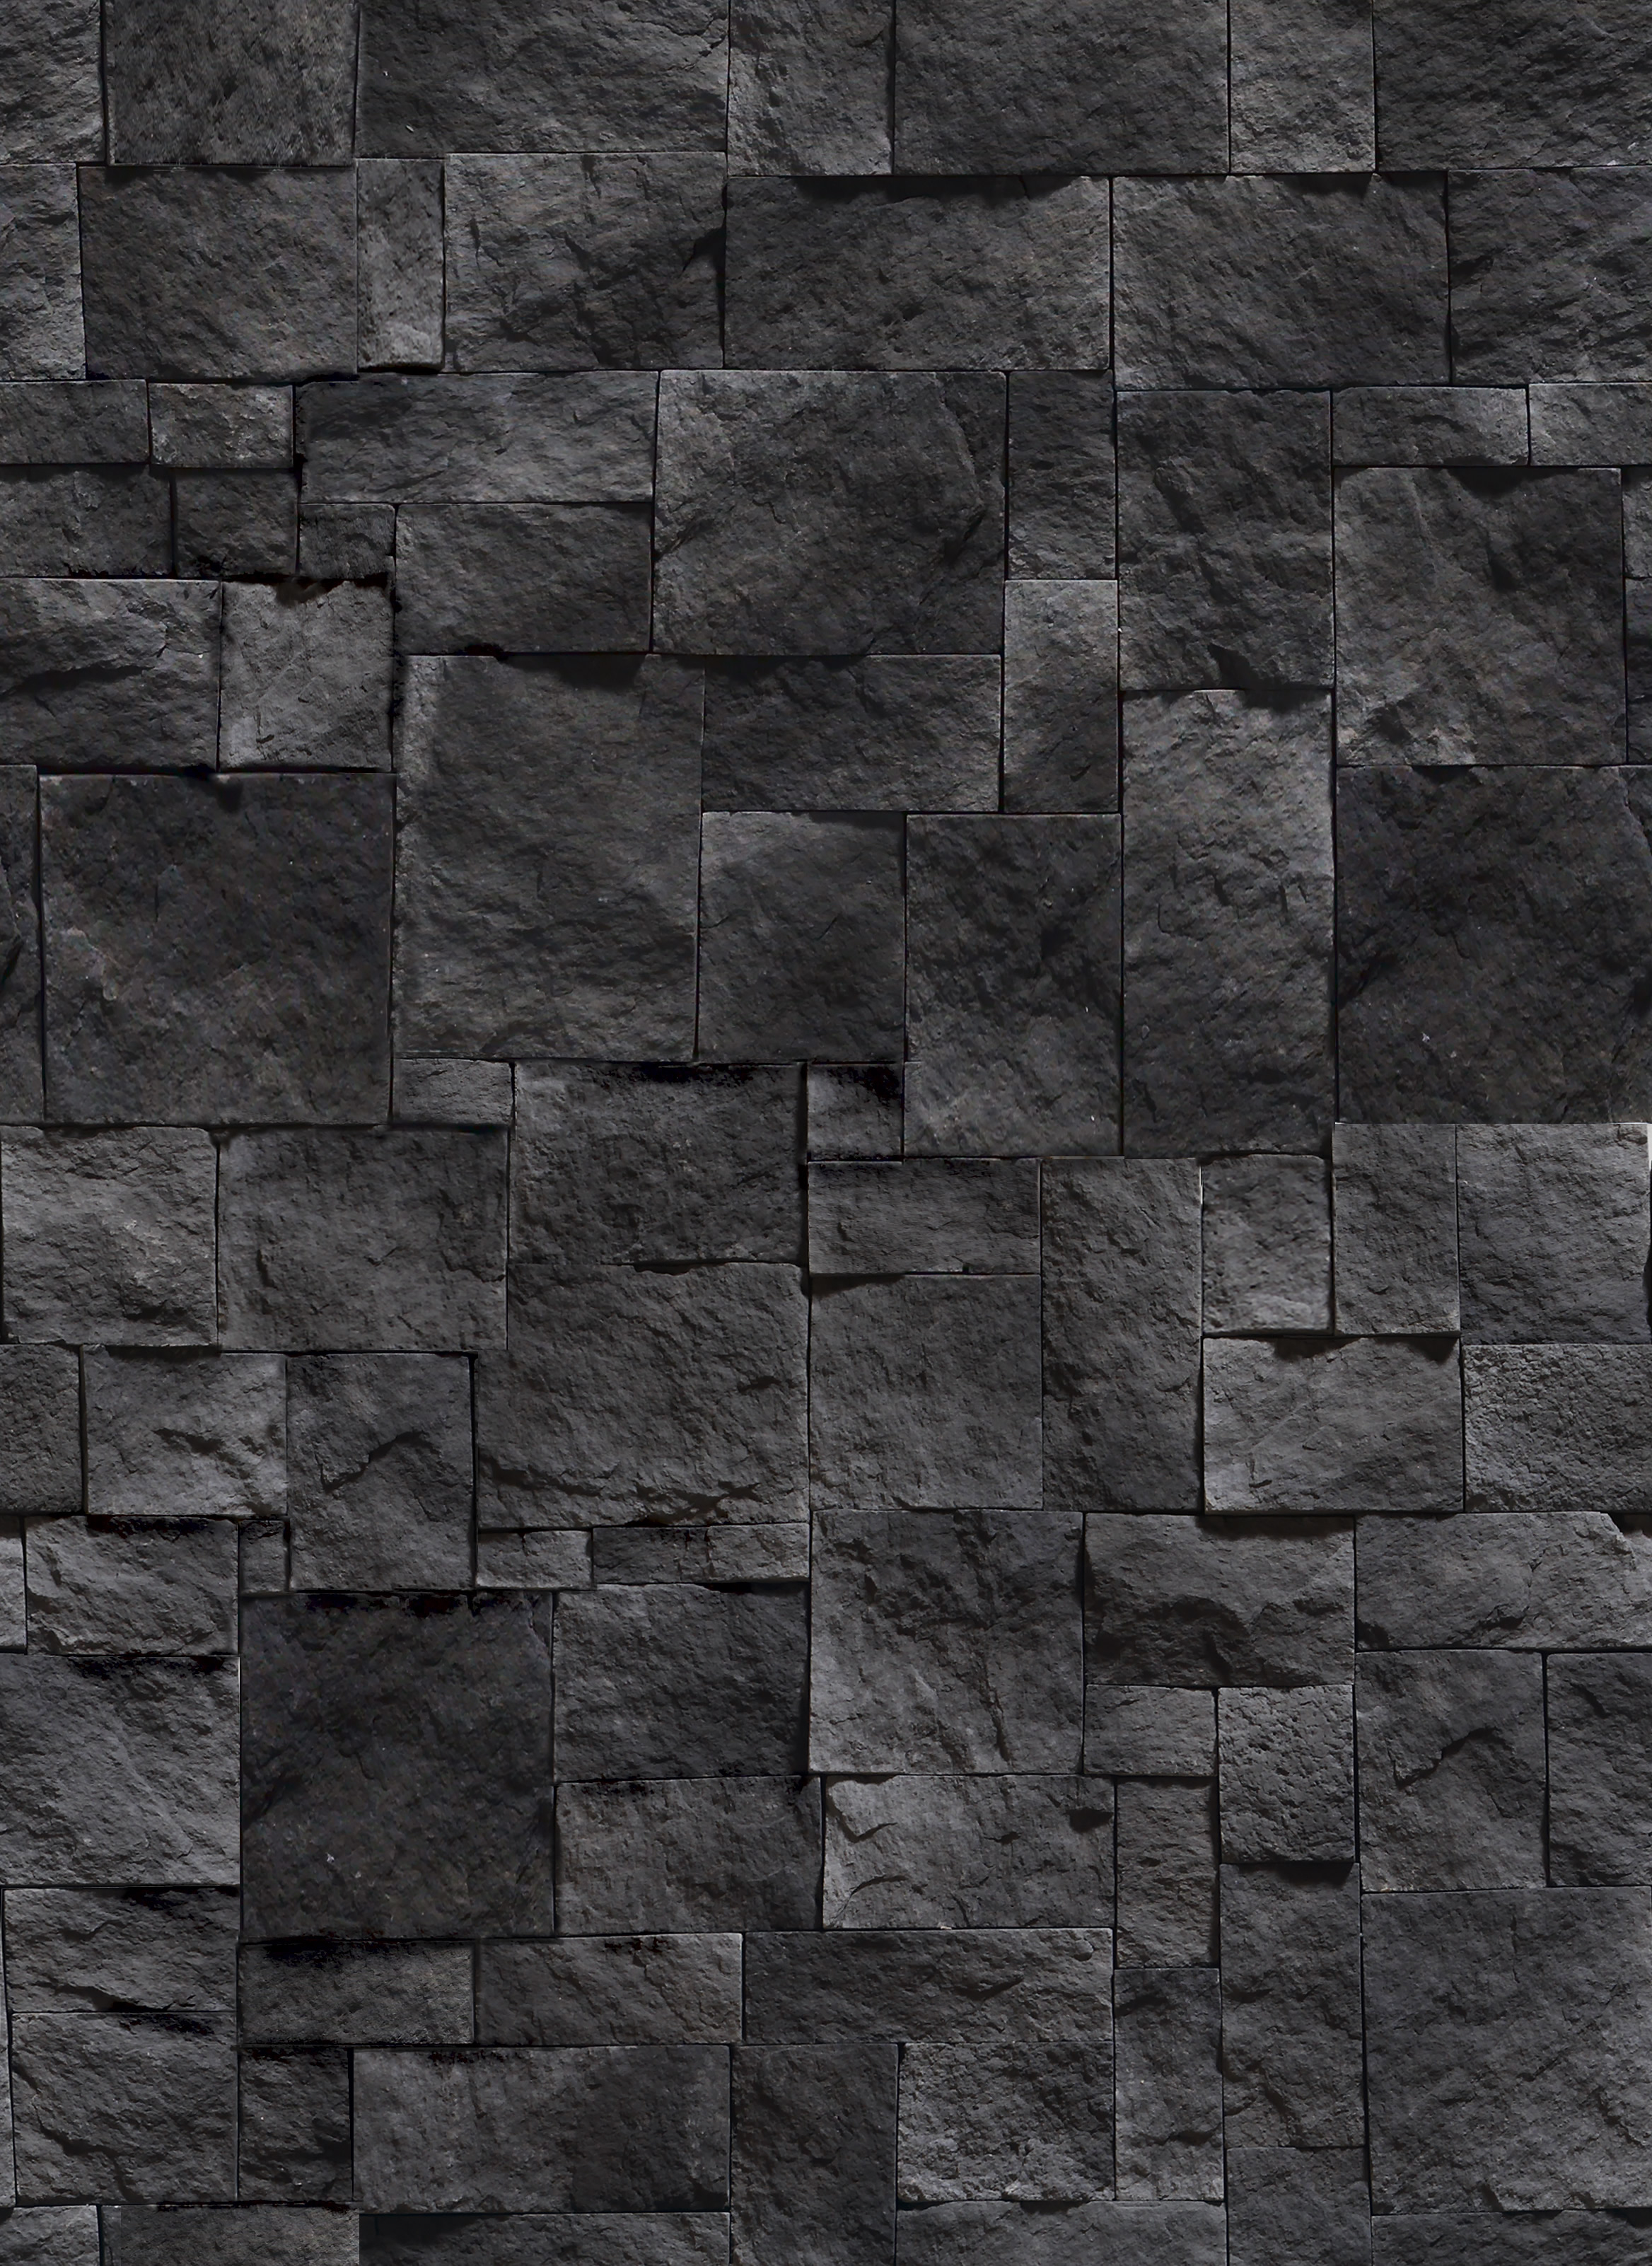 Black Marble Stone Background Texture Pattern Free Stock